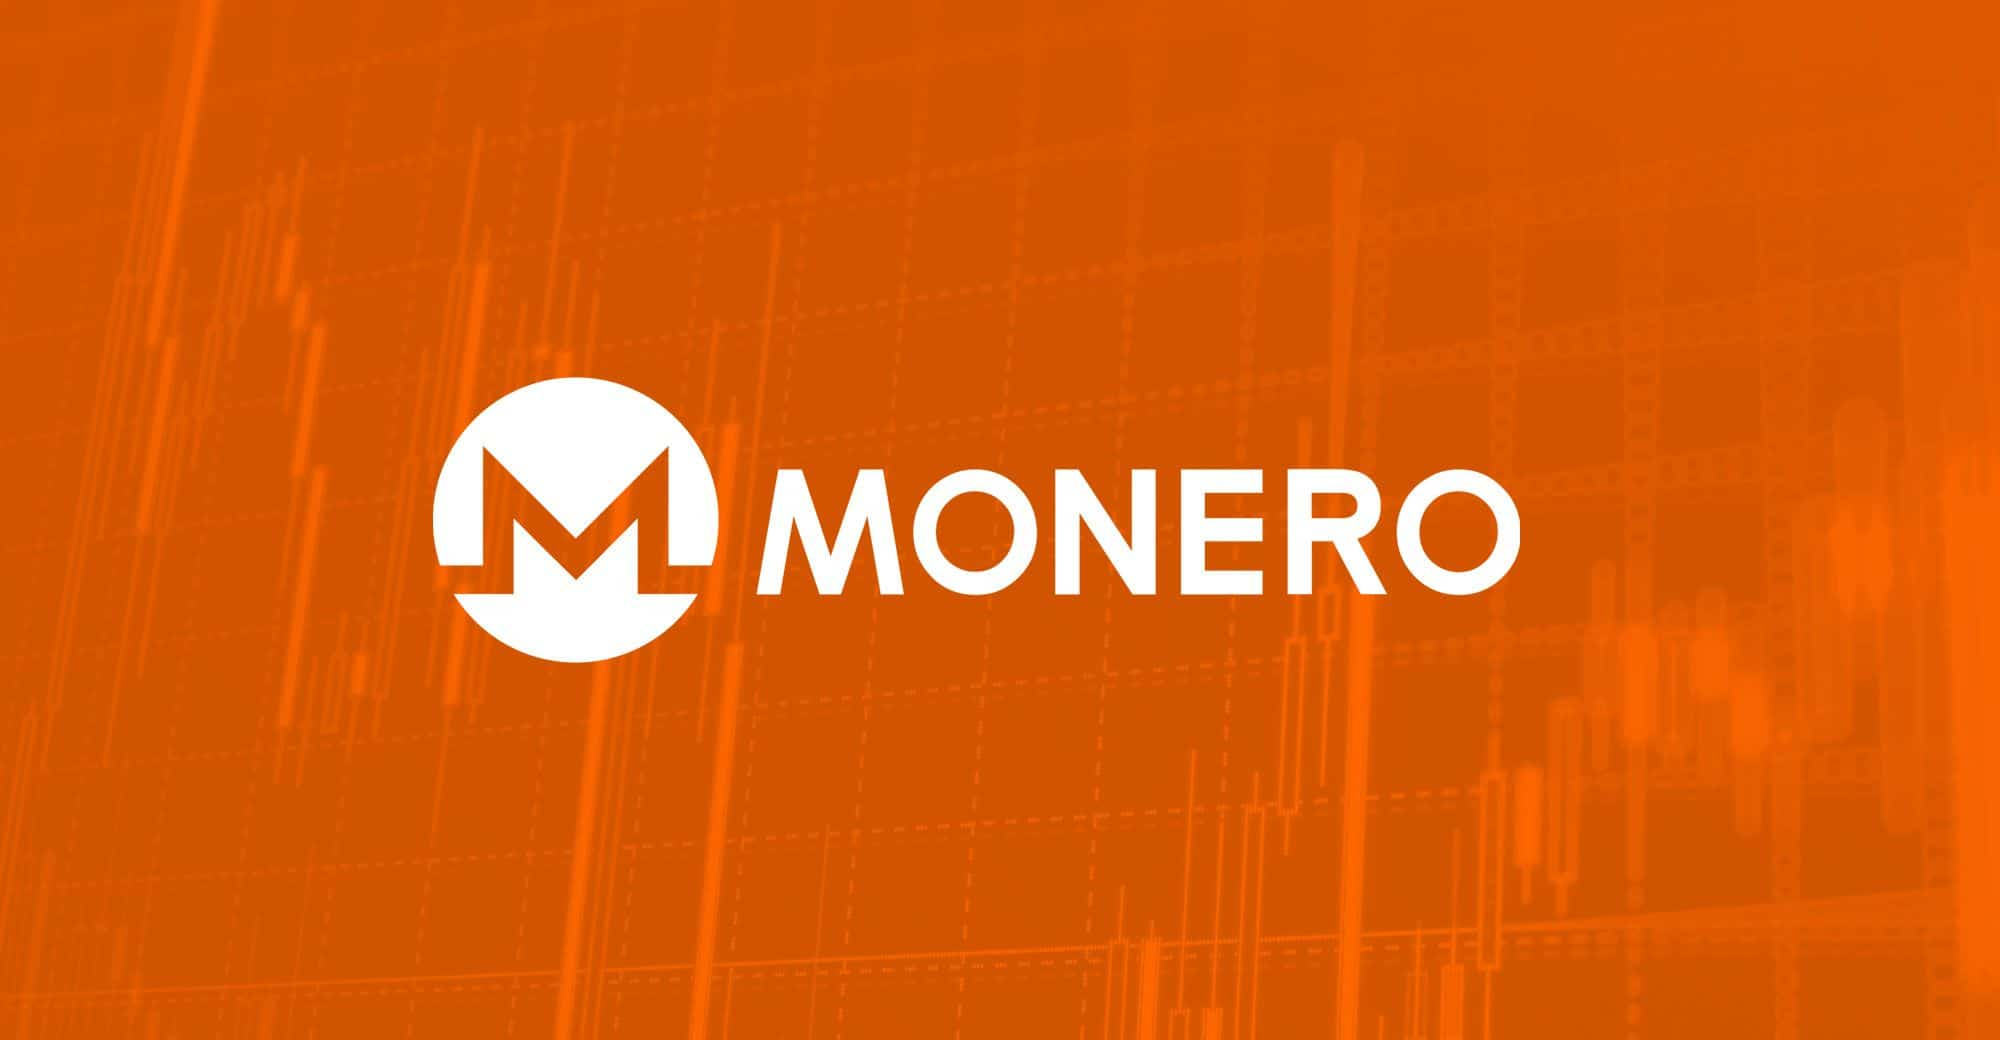 Monero la criptomoneda privada